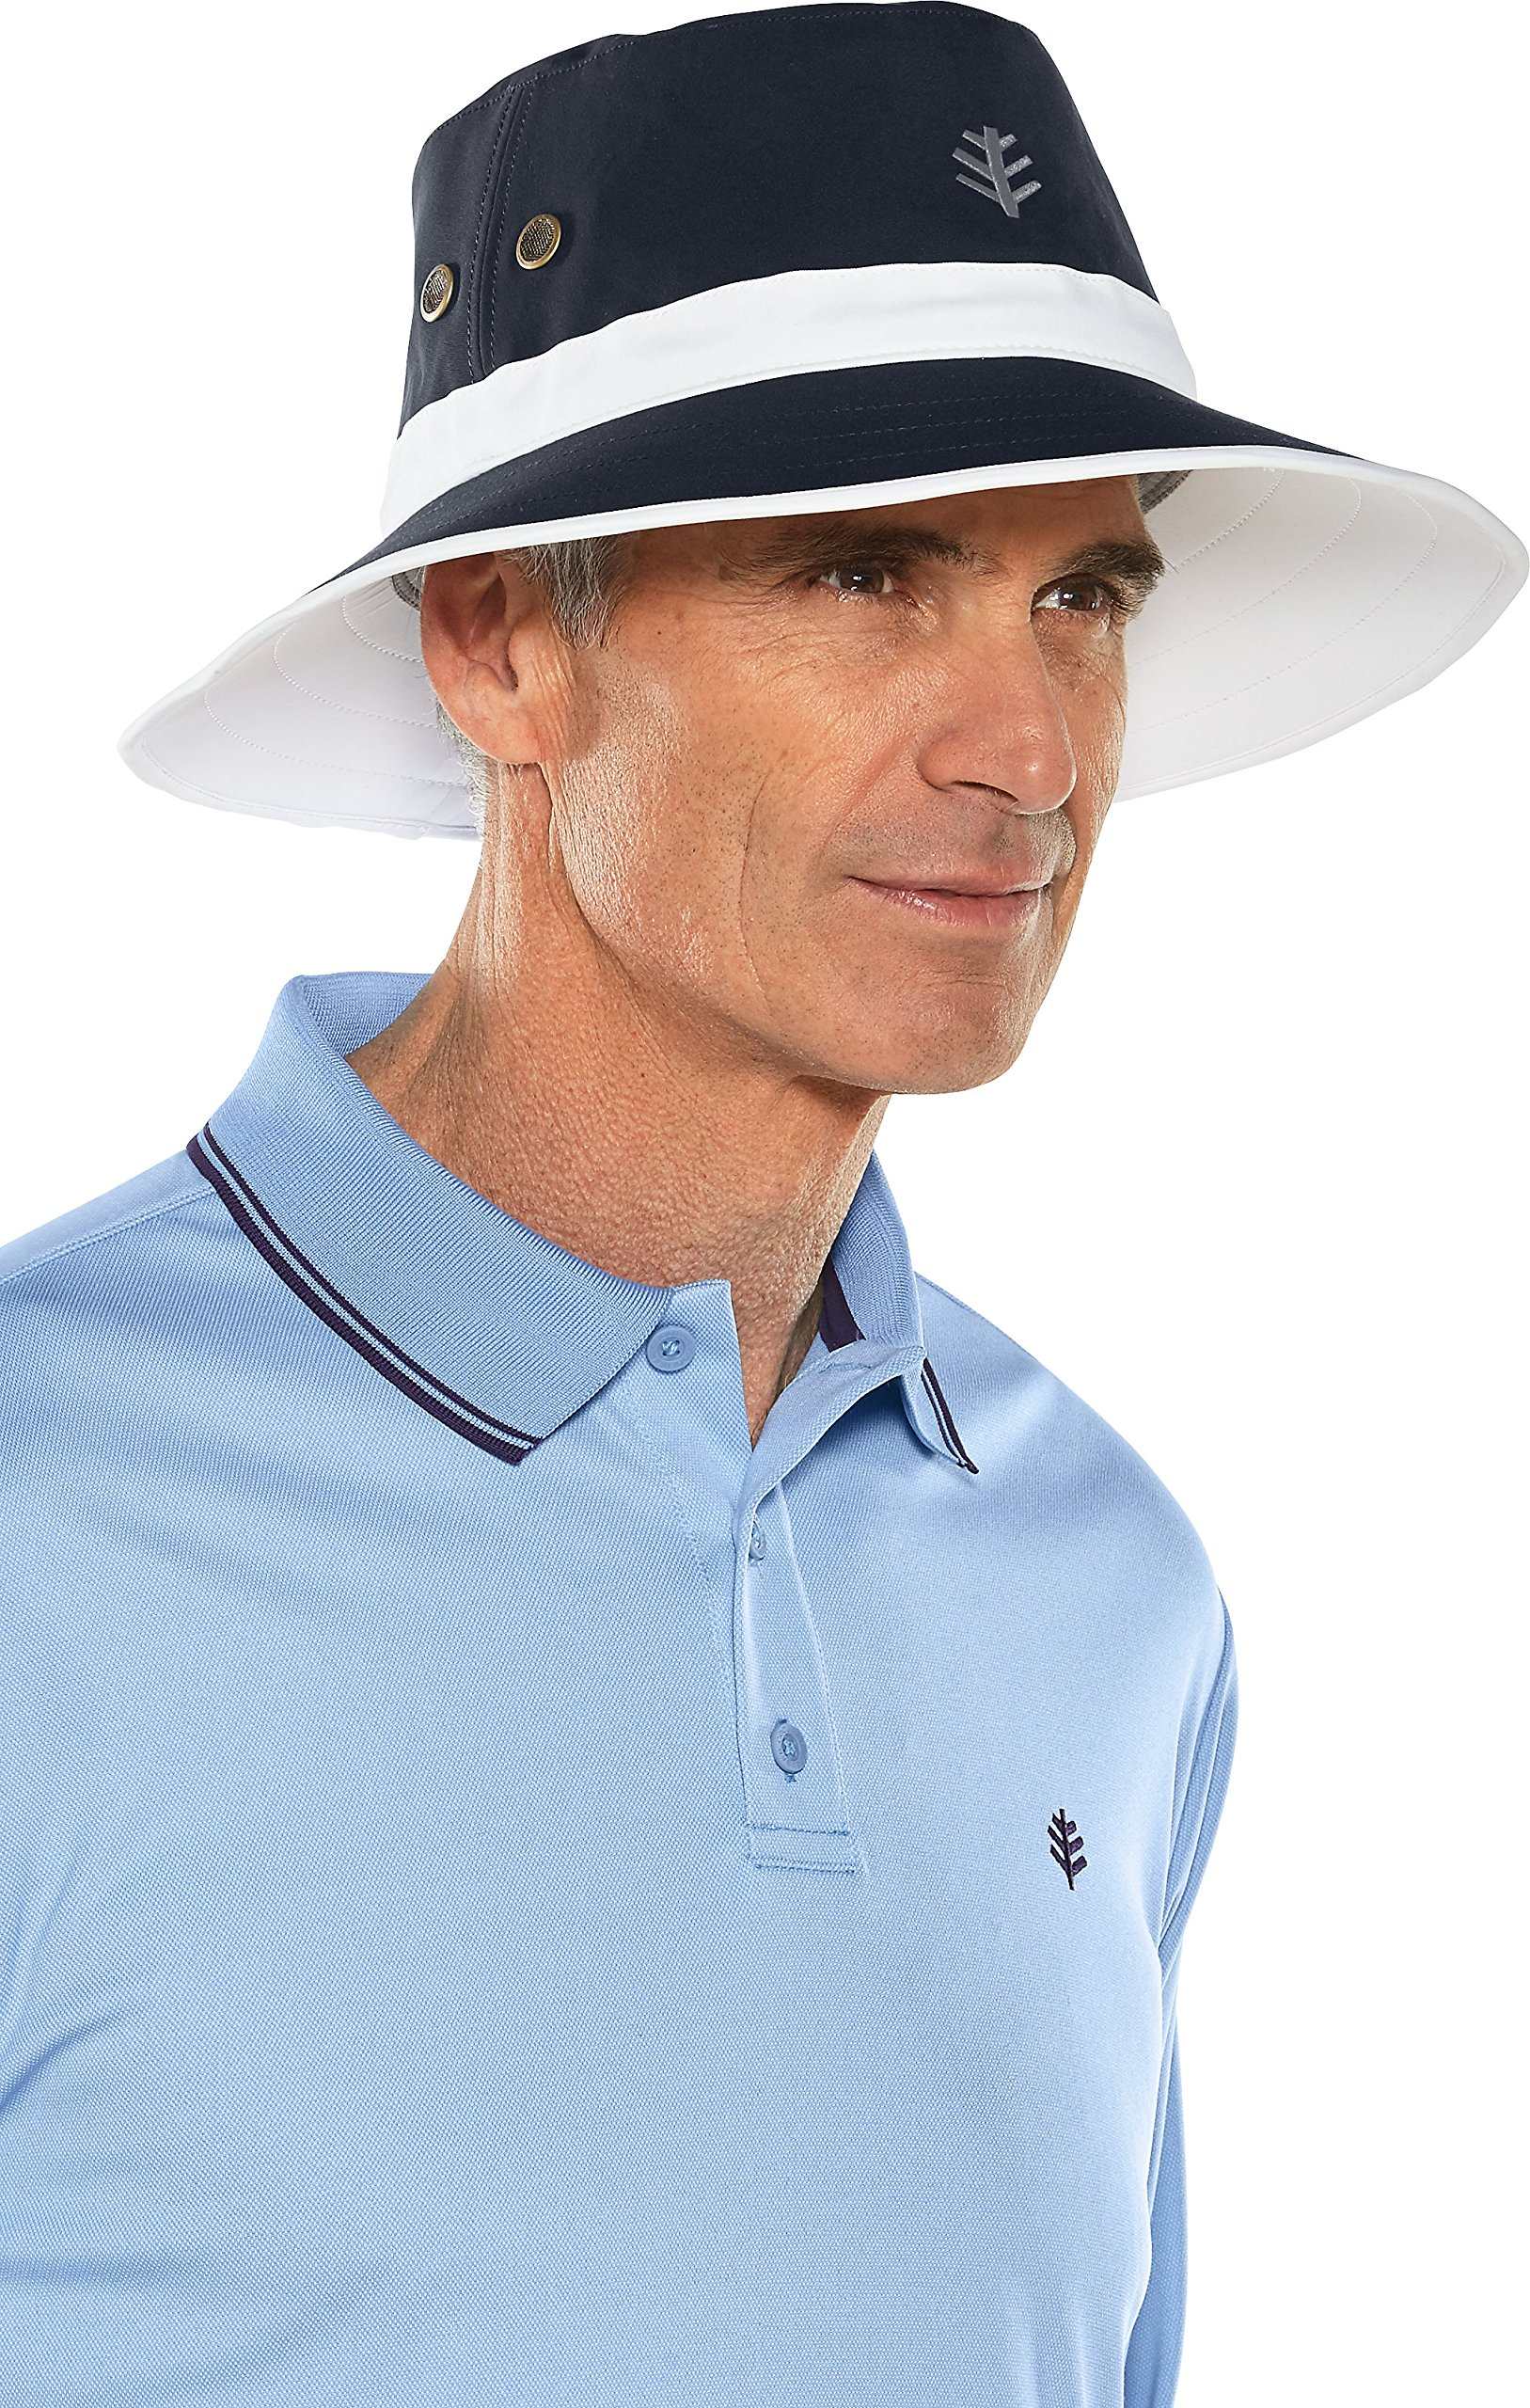 Coolibar UPF 50+ Men's Matchplay Golf Hat - Sun Protective (XX-Large- White/Navy)